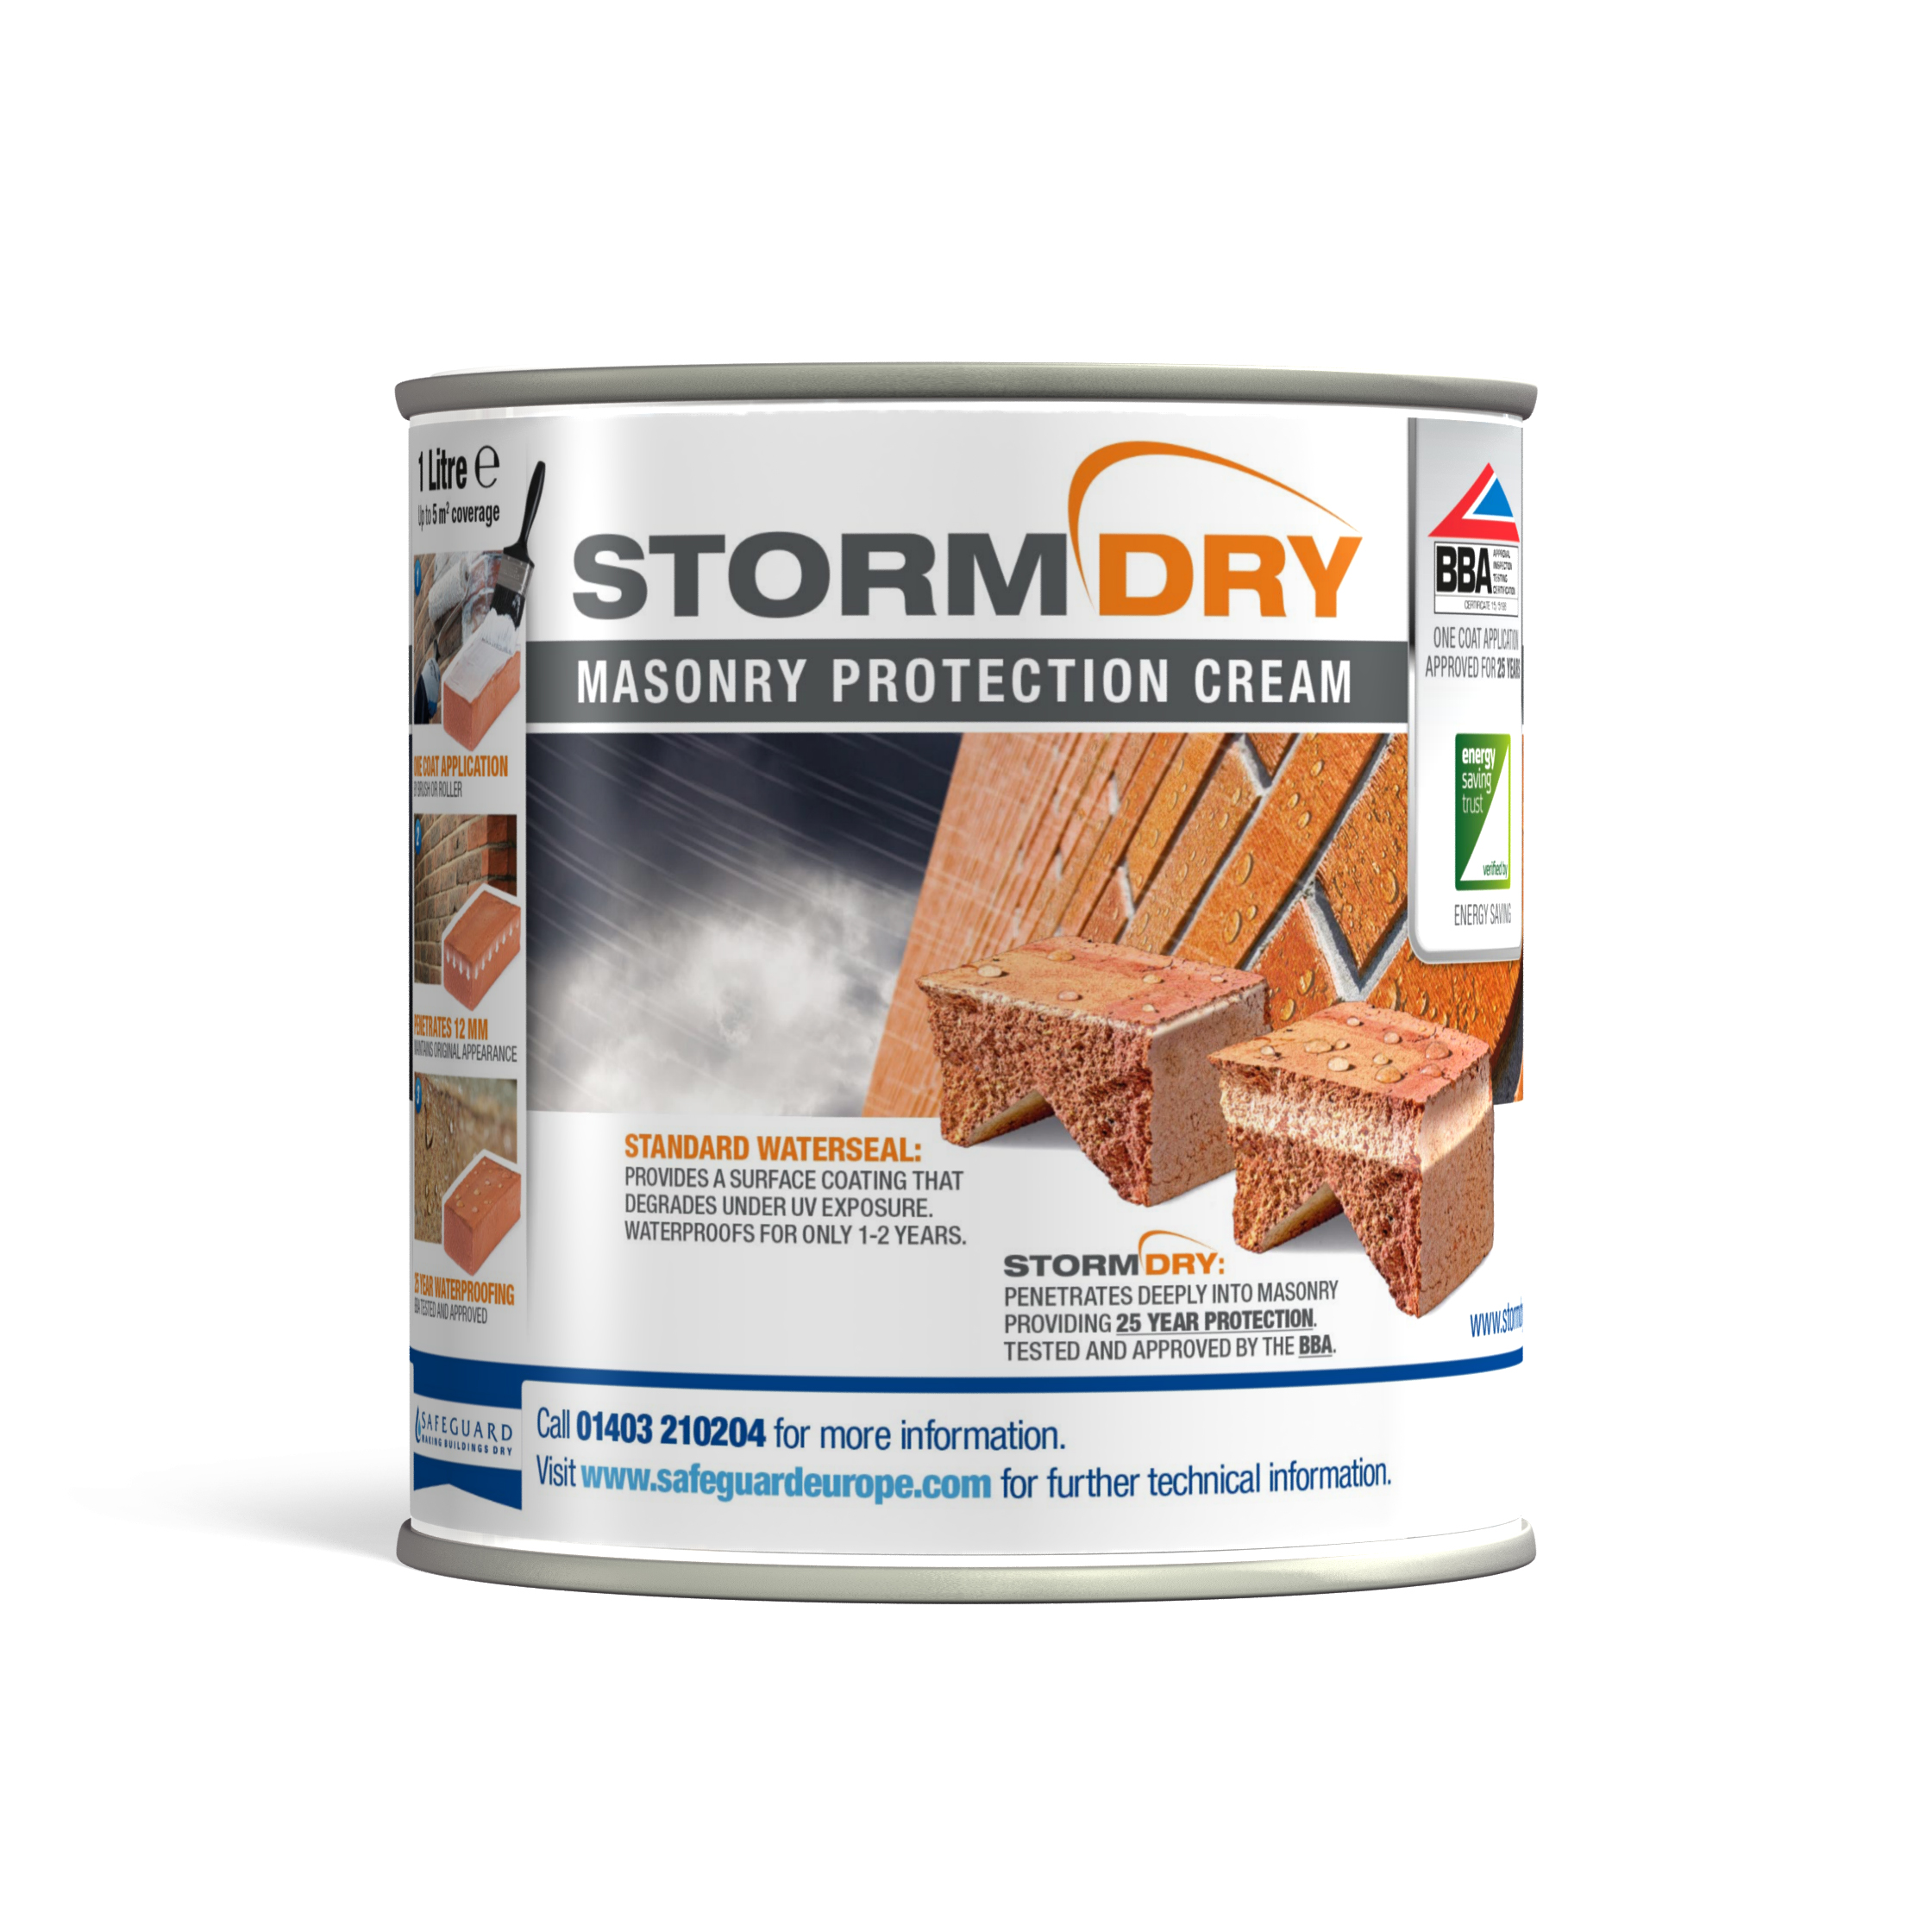 Stormdry cream available in 'on the van' option